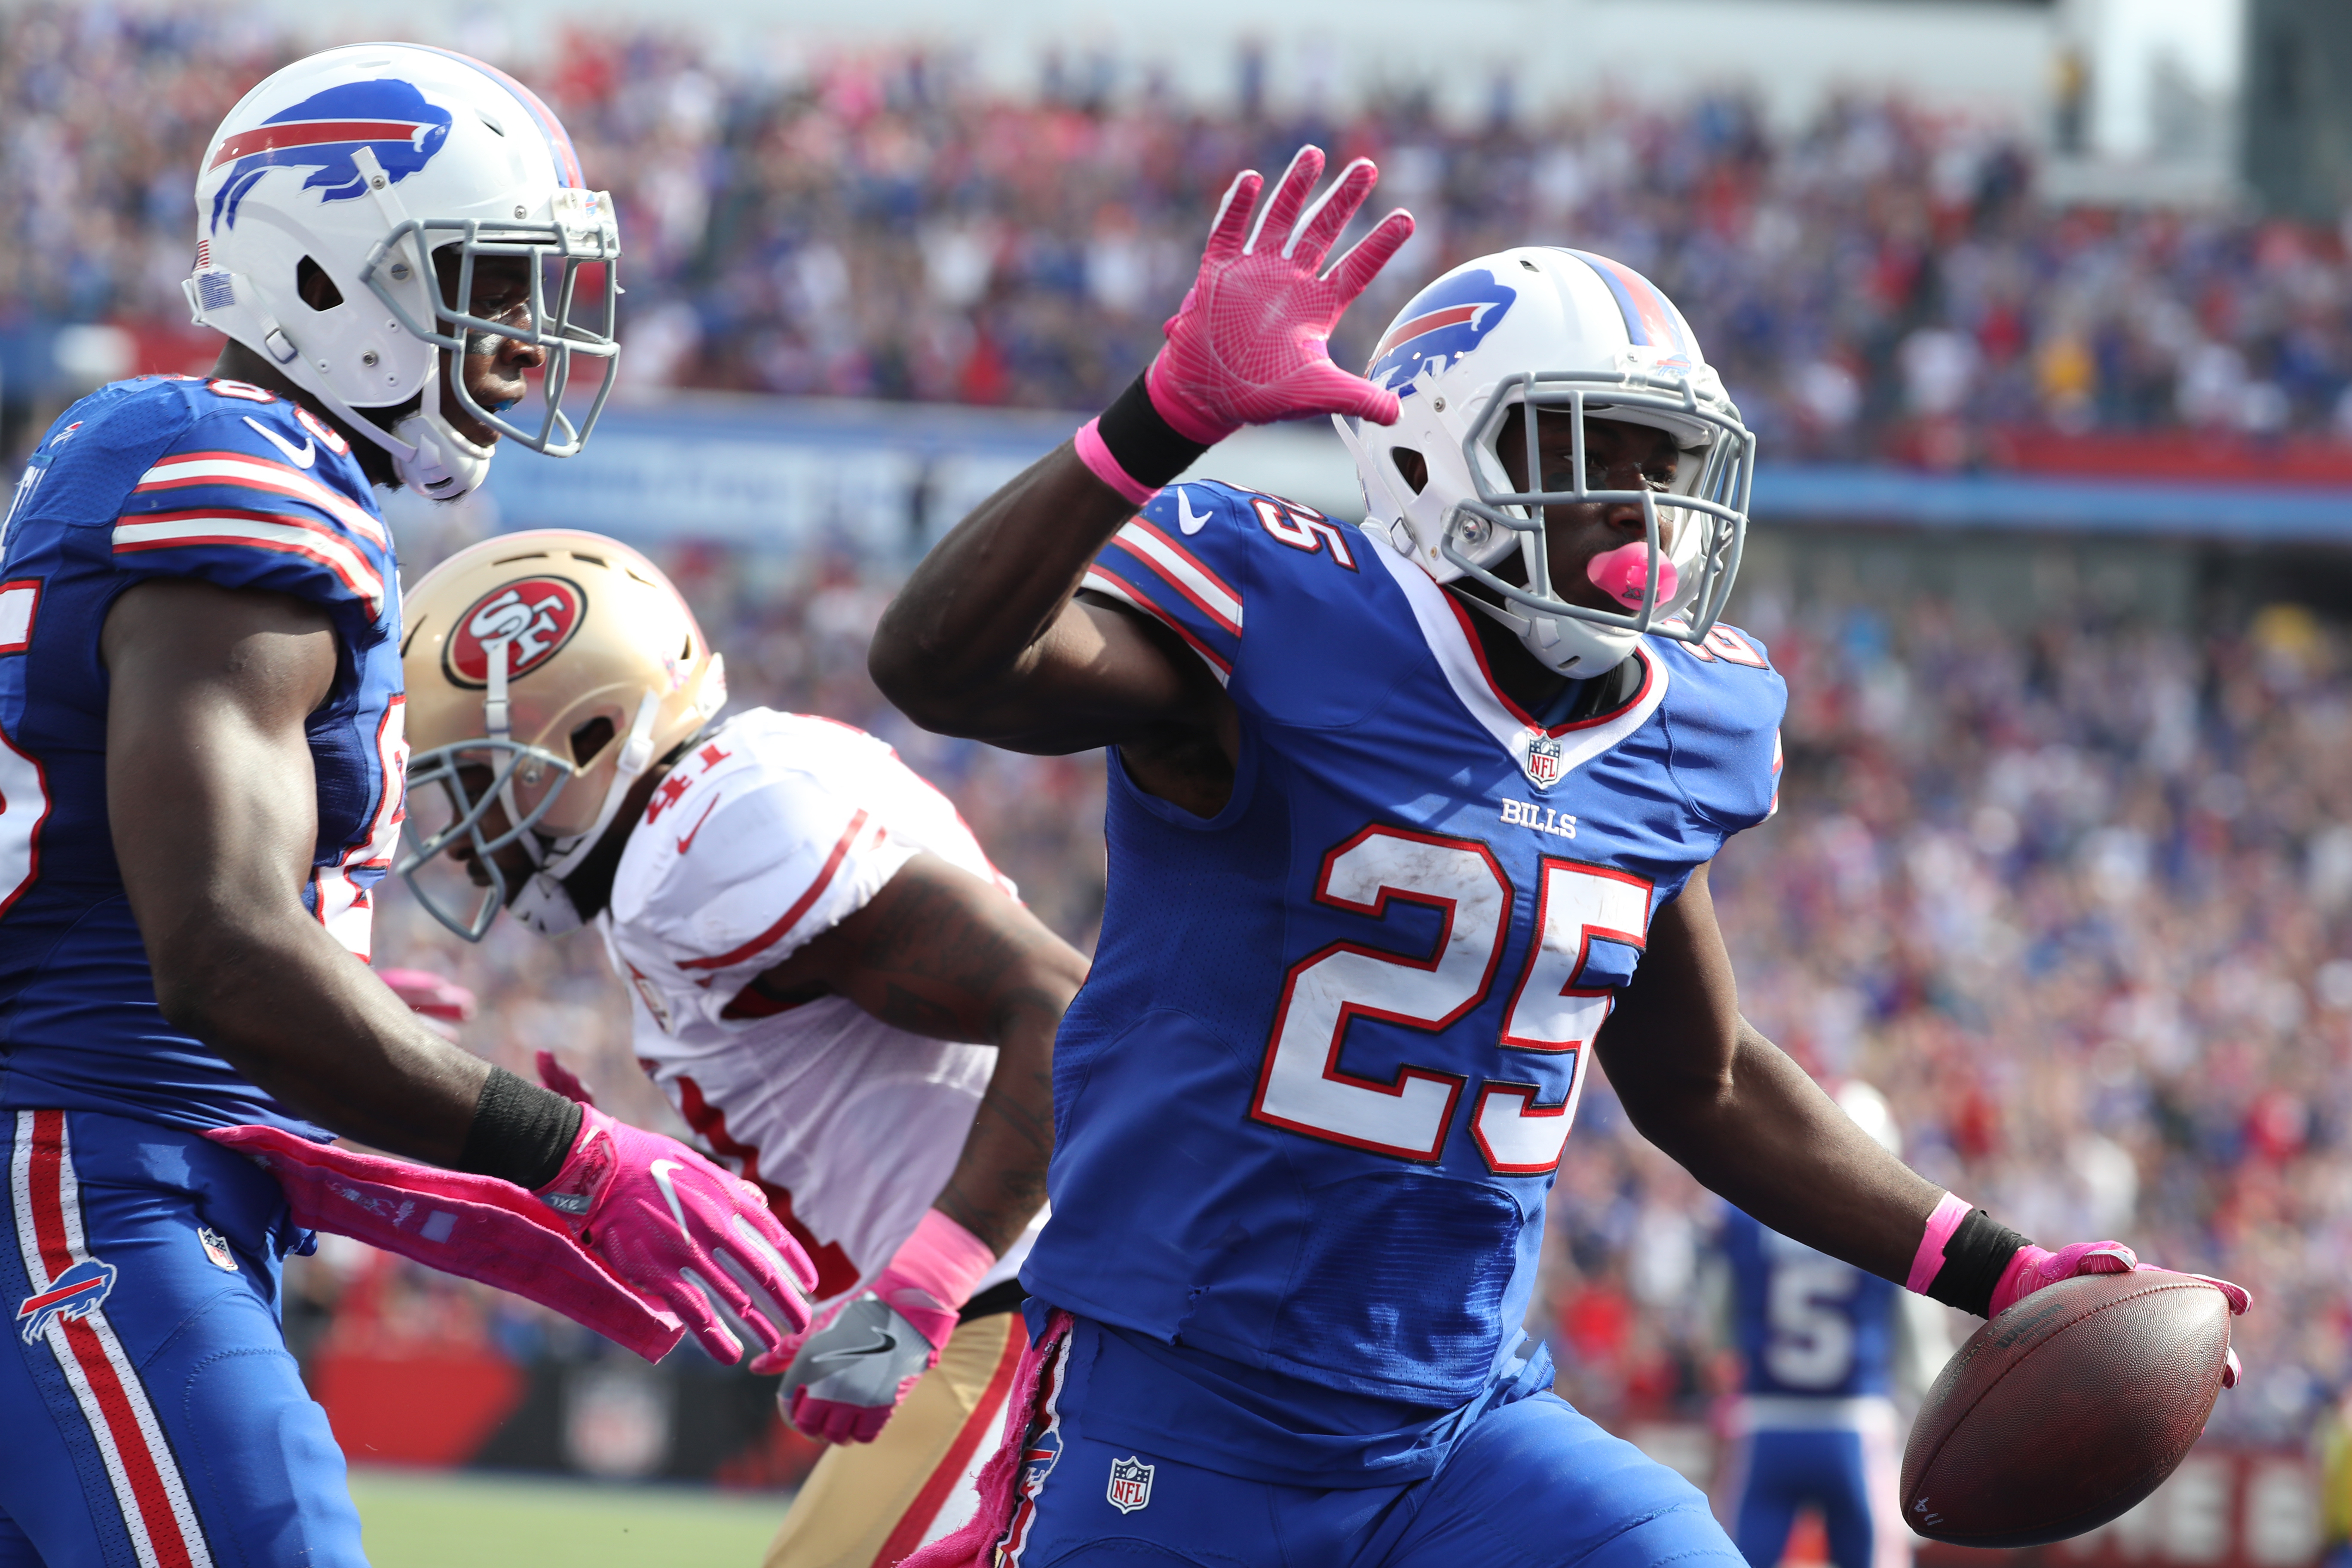 Buffalo Bills running back LeSean McCoy scores his second touchdown of the game against the 49ers during the second quarter at New Era Field.  (James P. McCoy/ Buffalo News)